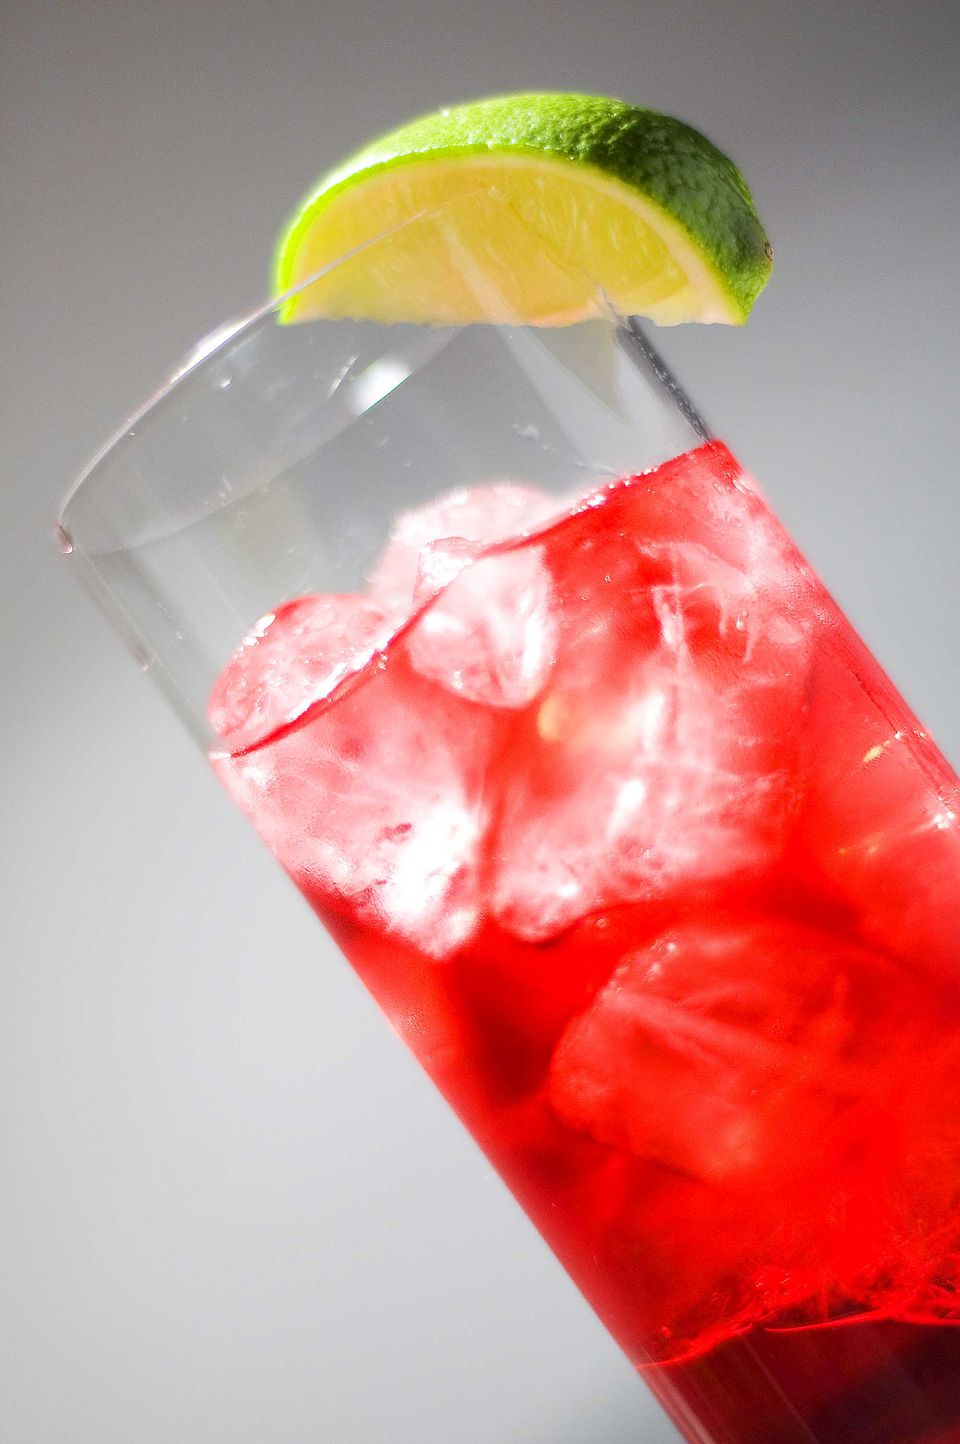 A woo woo cocktail with a lime garnish